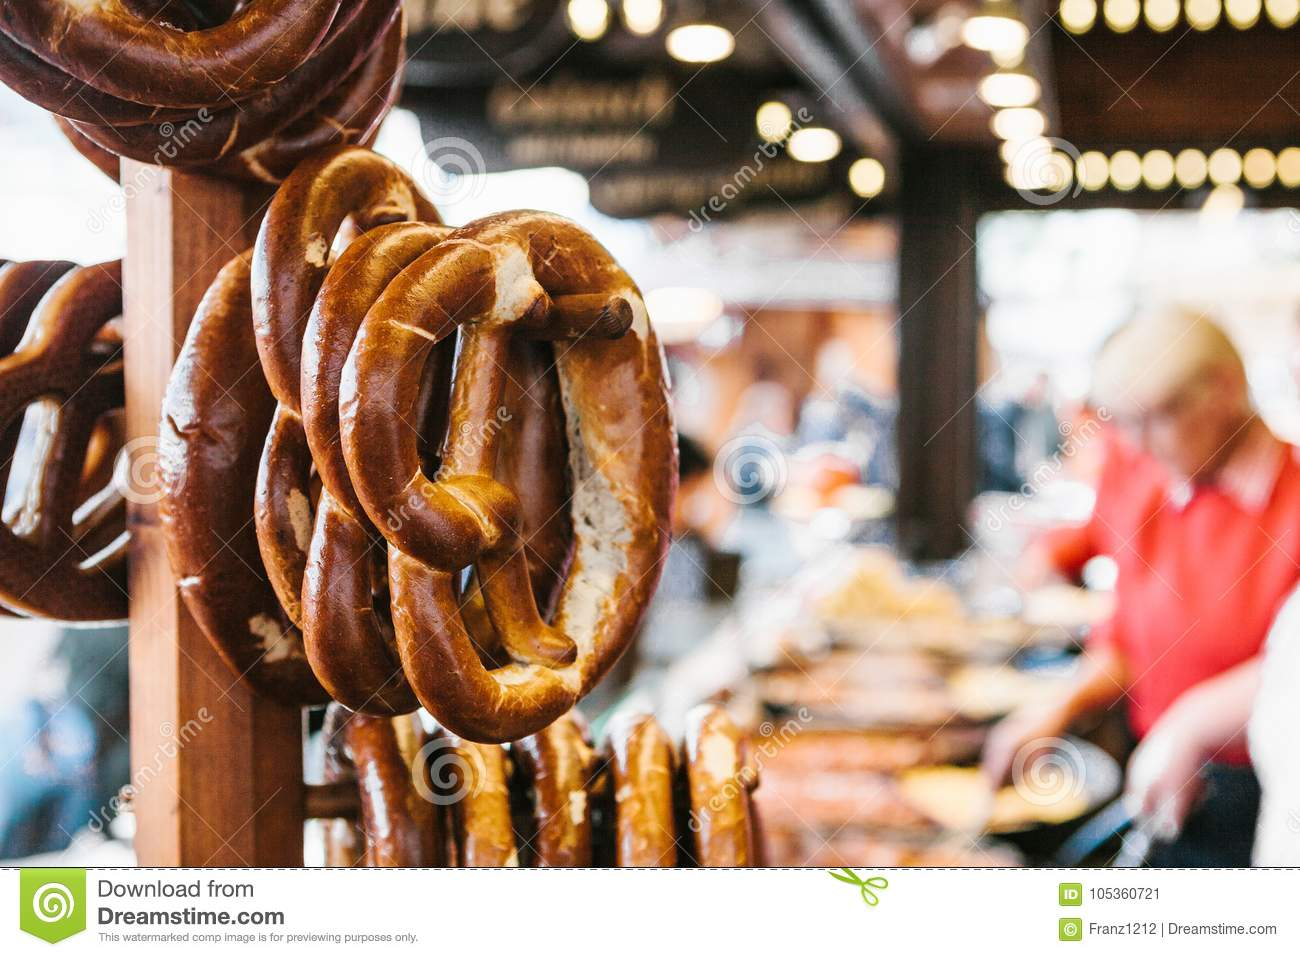 Traditional pretzels called Brezel hang on the stand against the background of a blurred street market and people on